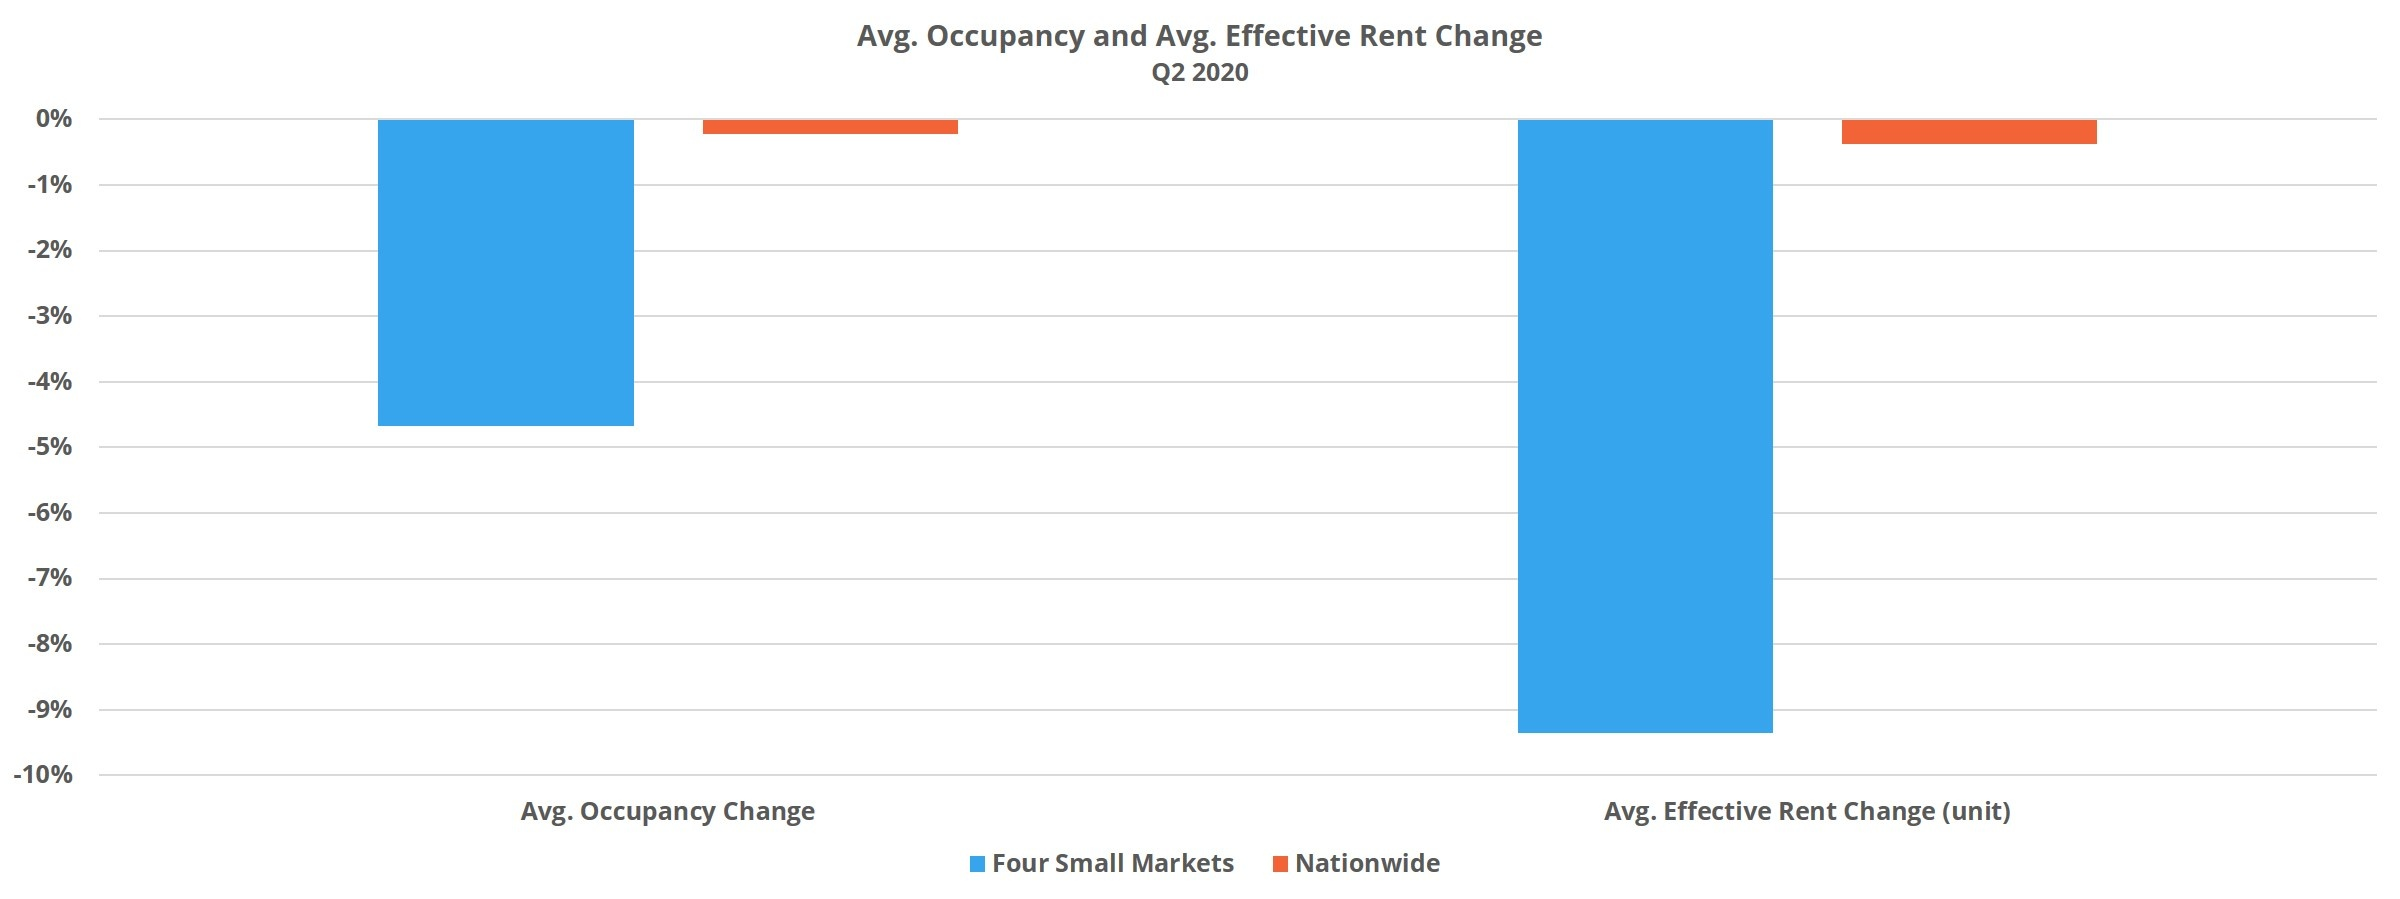 Avg. Occupancy and Avg. Effective Rent Change